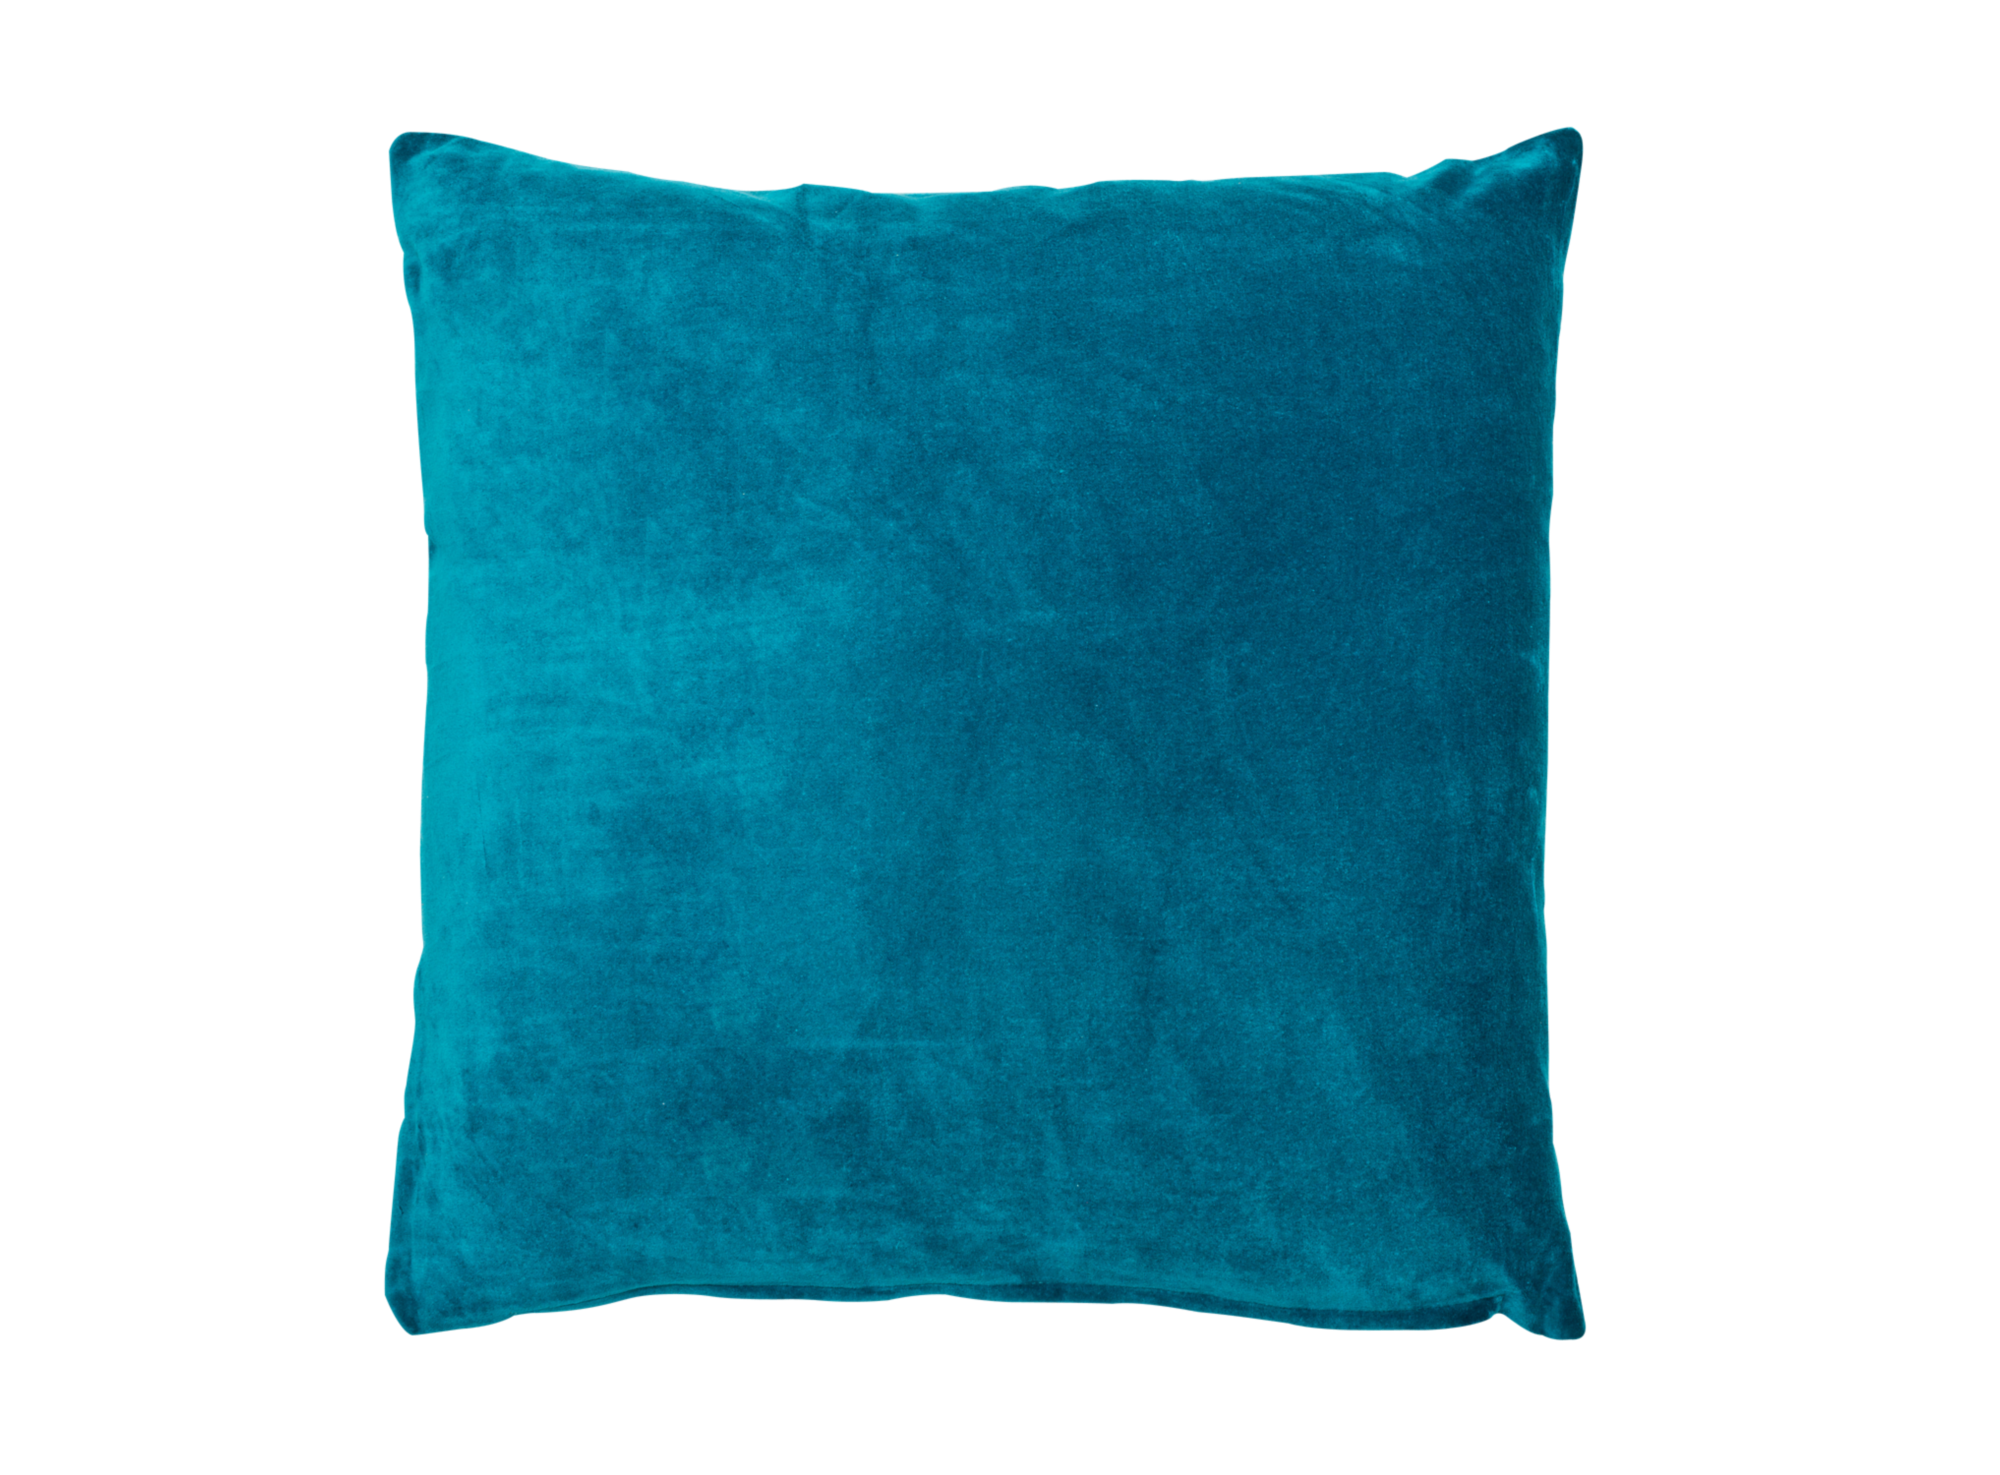 Coussin Velours 60x60 Bleu Canard Fly Coussin Velours Coussin 60x60 Bleu Canard